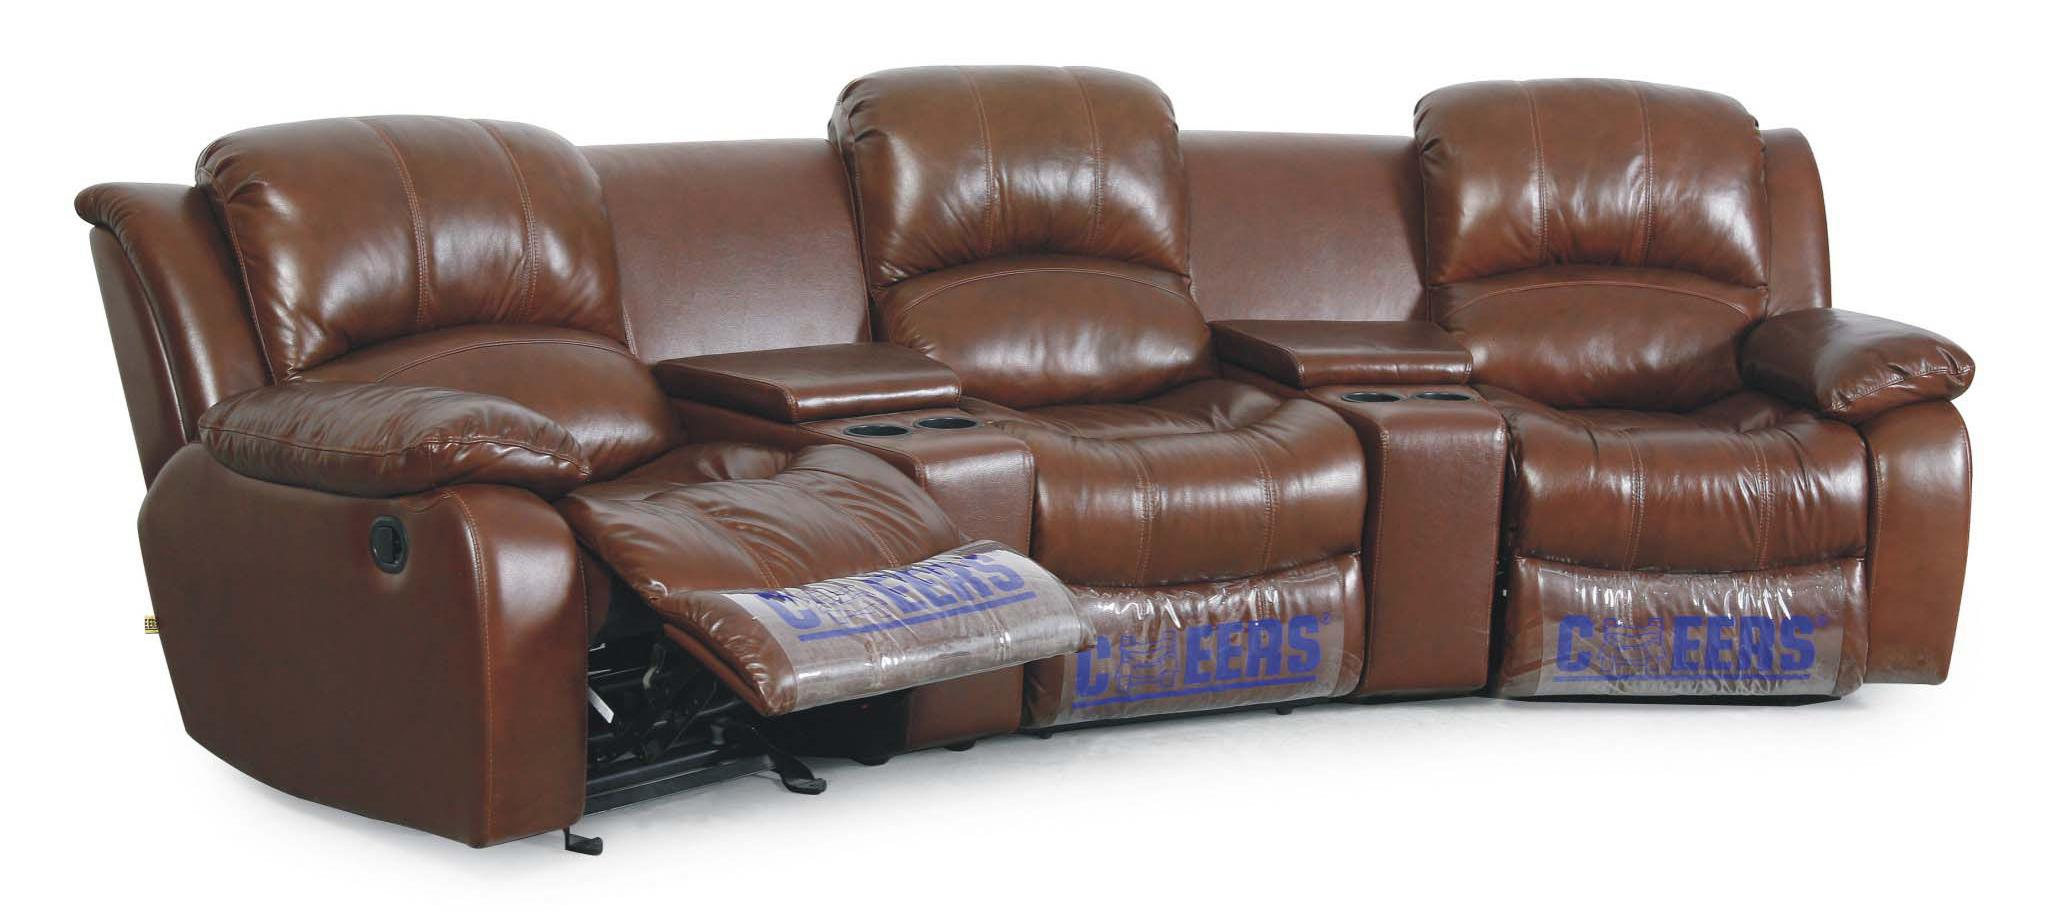 XW8251N 3-Person Leather Theater Seating by Cheers Sofa at Lagniappe Home Store